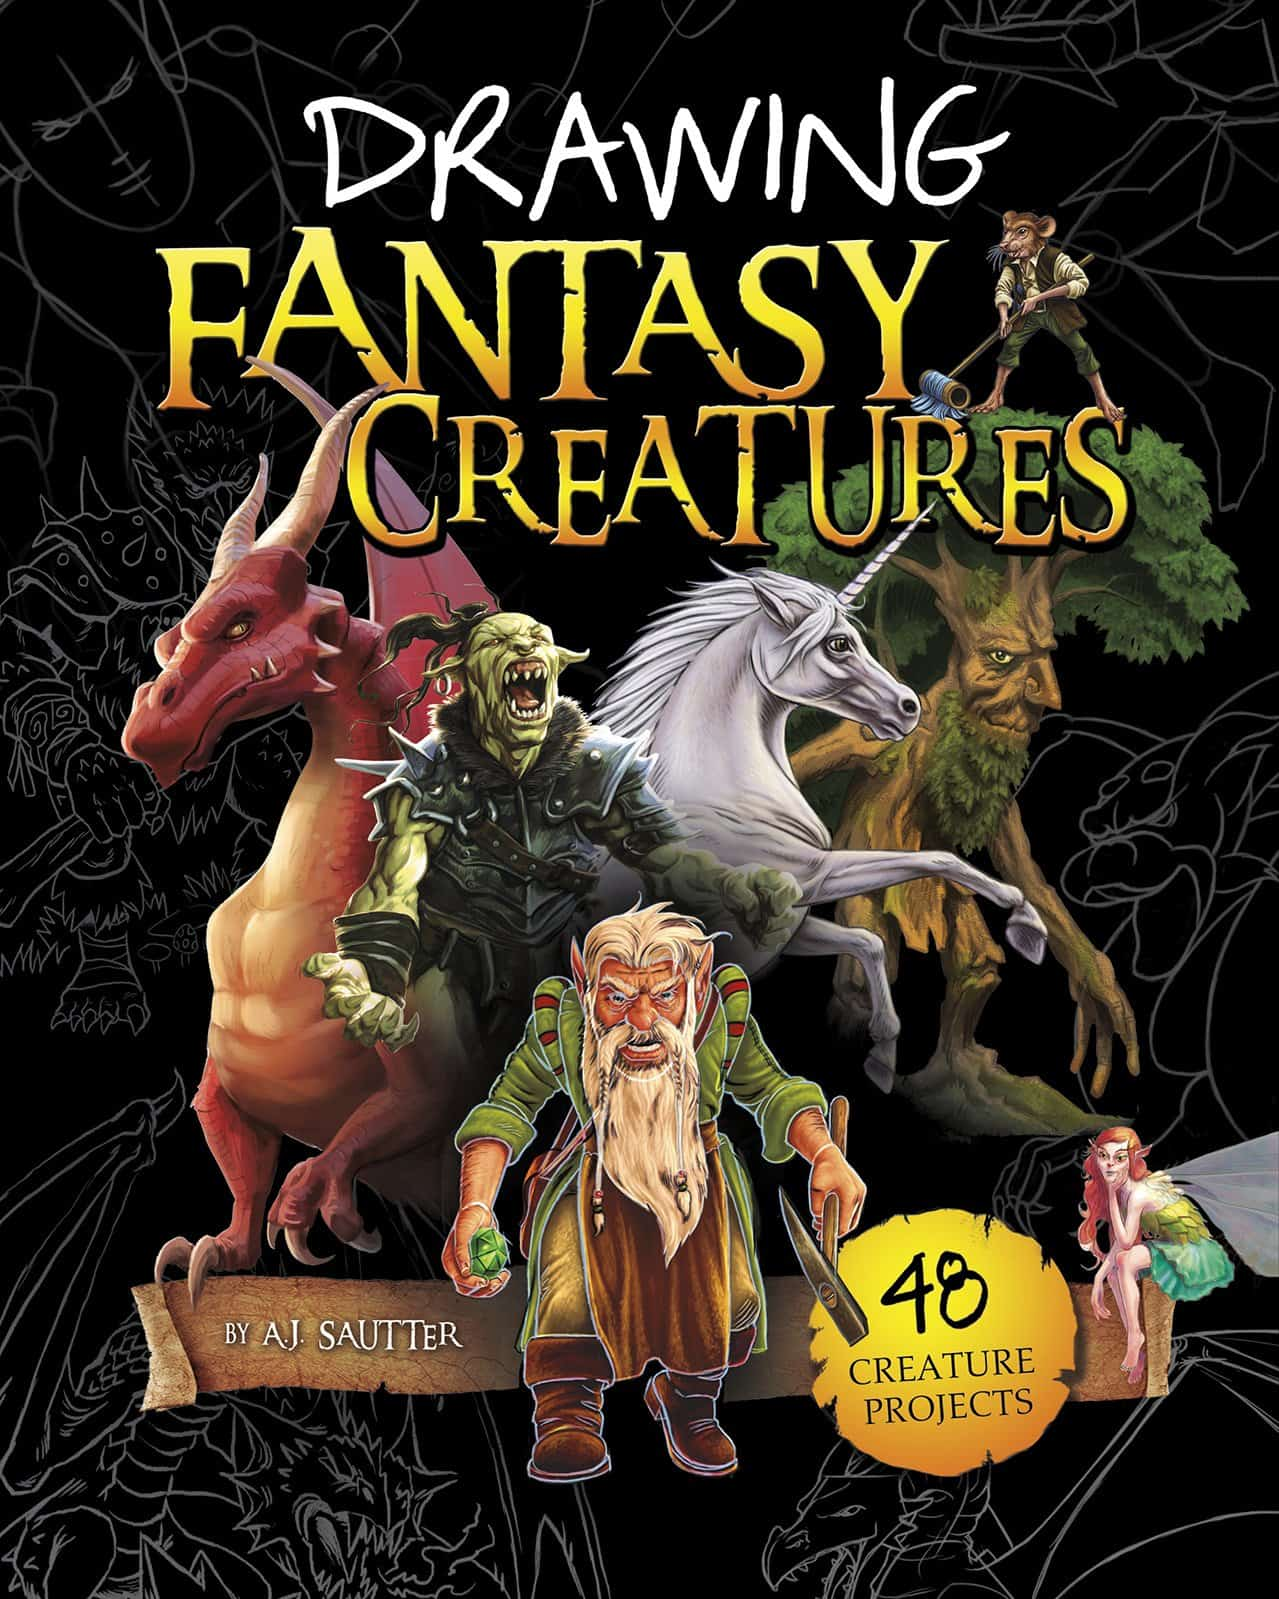 Drawing Fantasy Creatures Awesome Activity Books: Crafts, Magic, Drawing, and More